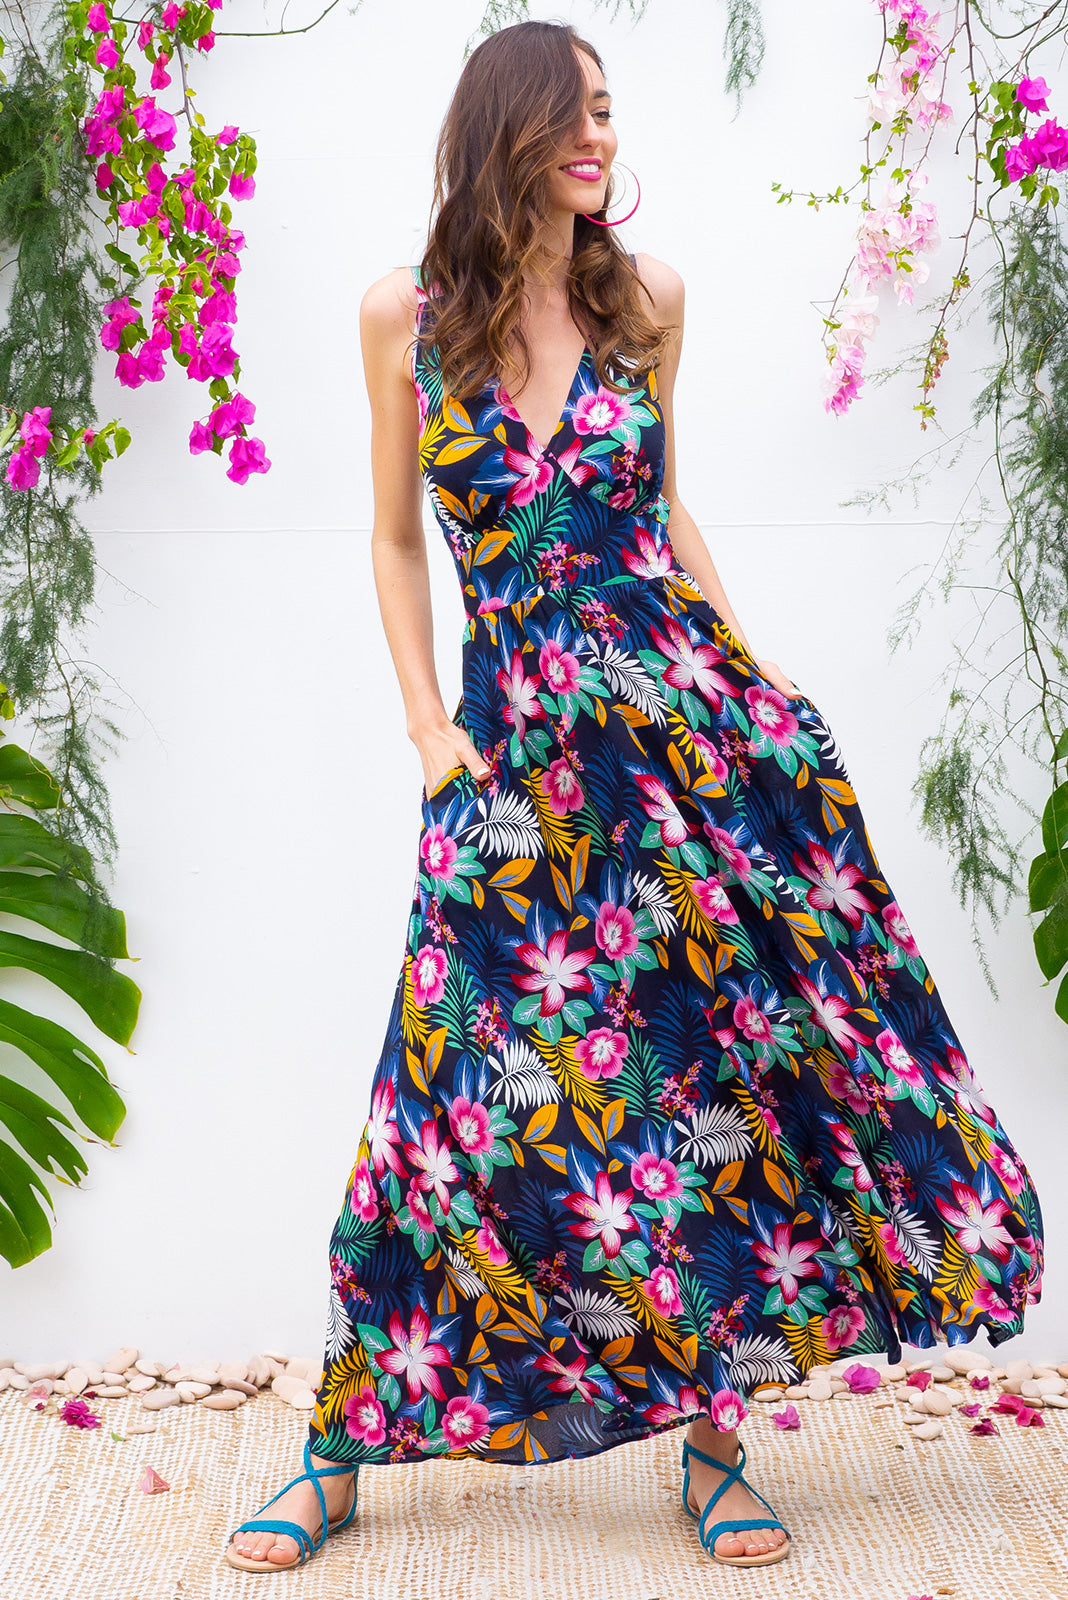 Lola Neon Jungle Maxi Dress features a vintage inspired fitted basque waist and elasticated waist with a sleeveless design and deep v neck the fabric is a soft woven rayon in a navy and multicoloured dark bright jungle print